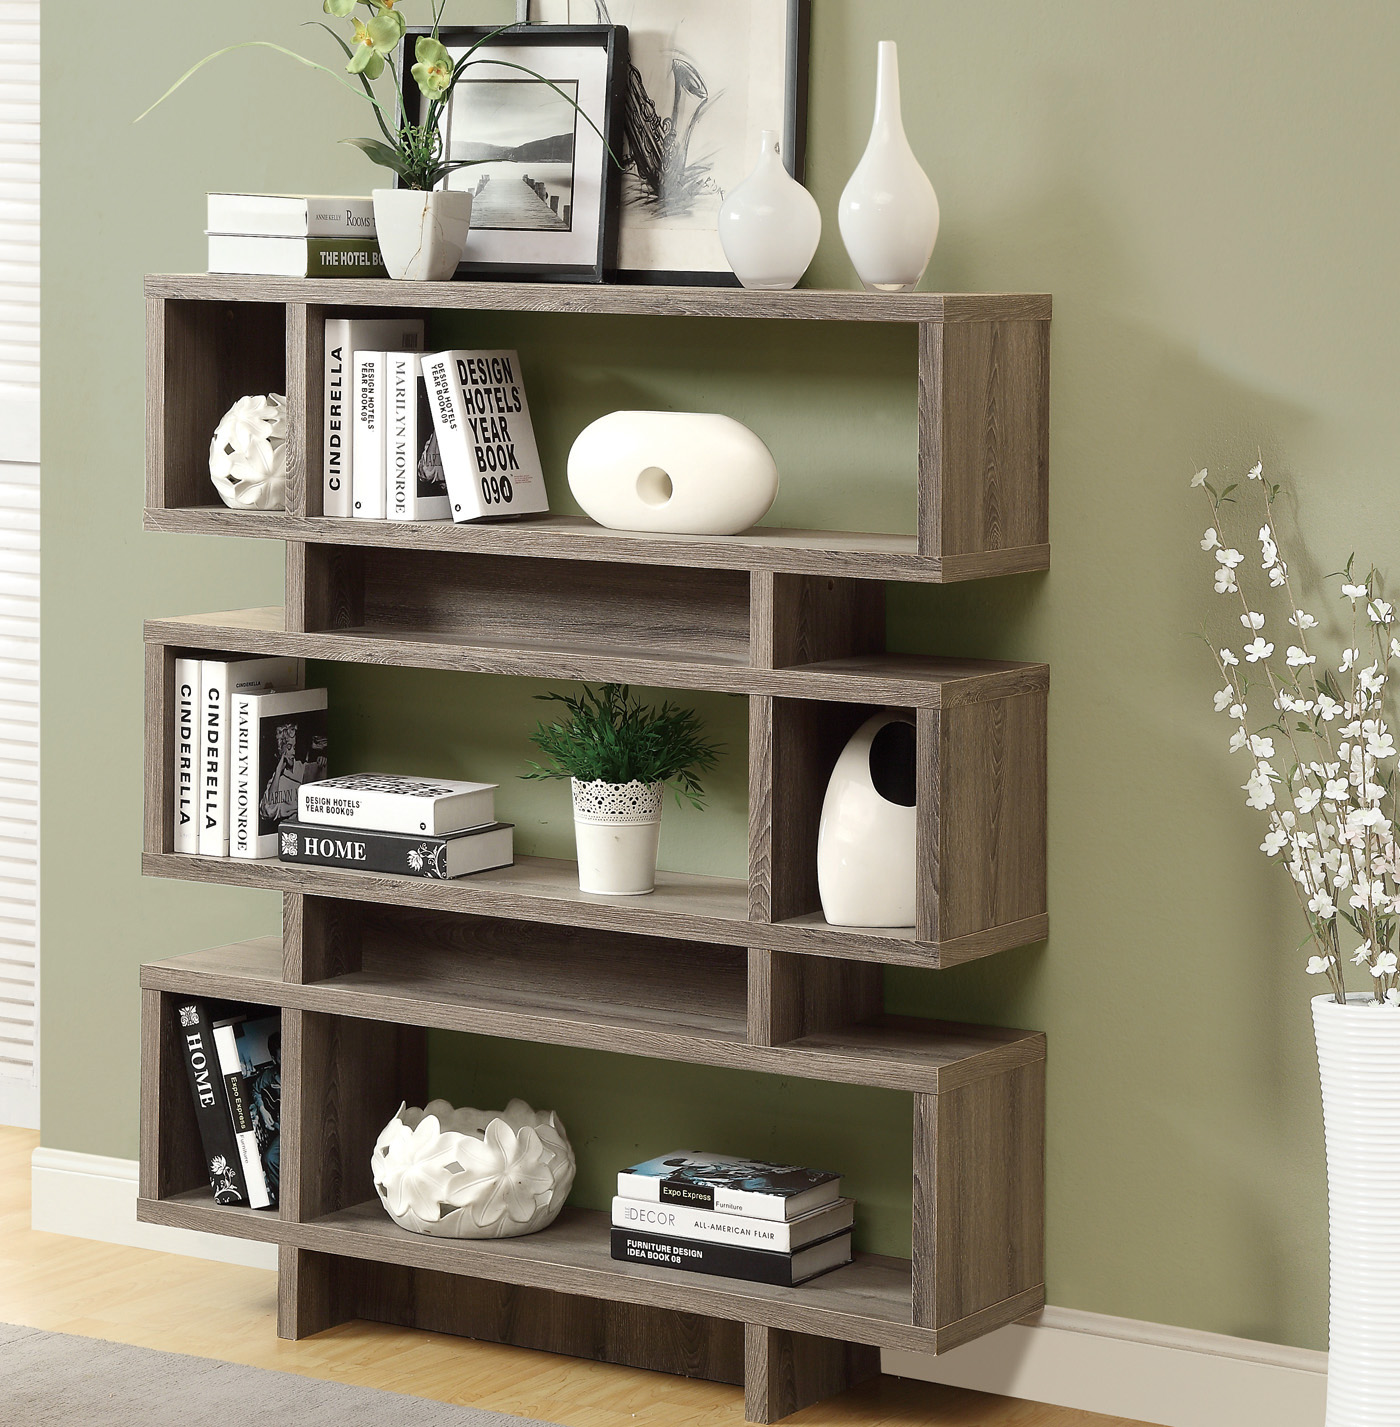 Reclaimed Look 55 Inch H Modern Bookcase in Bookcases